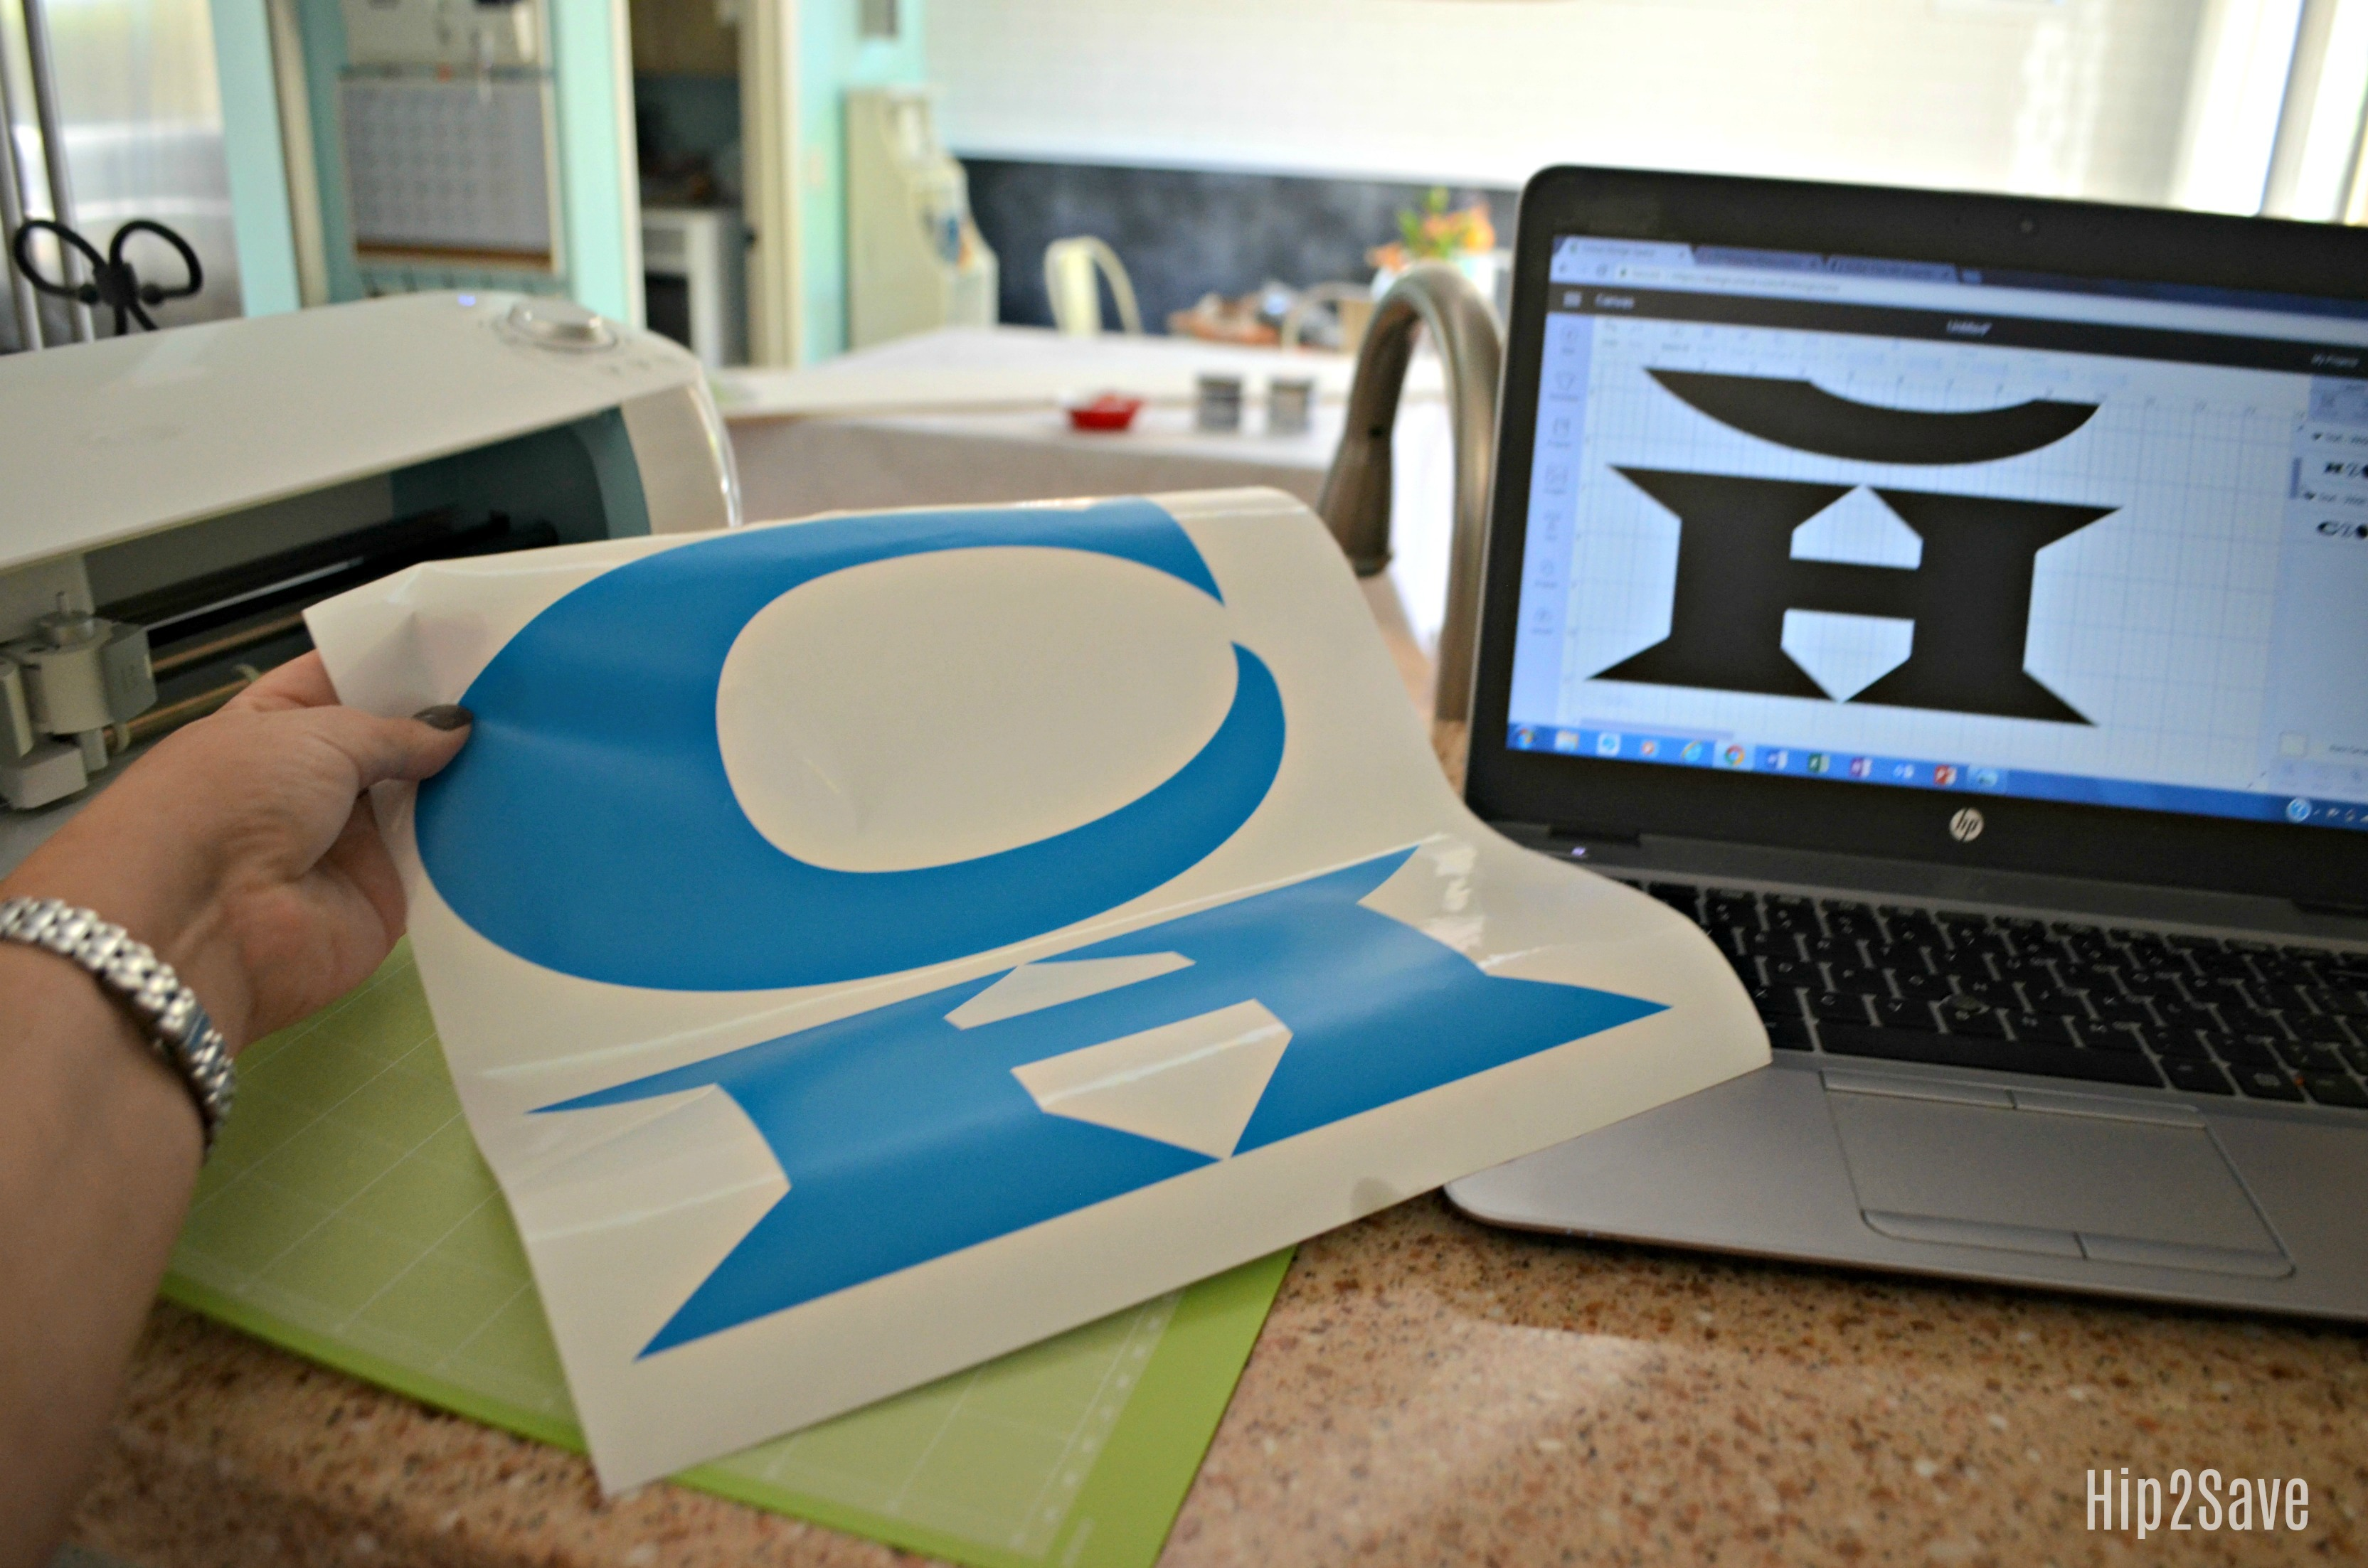 Cricut and Silhouette use different types of software.